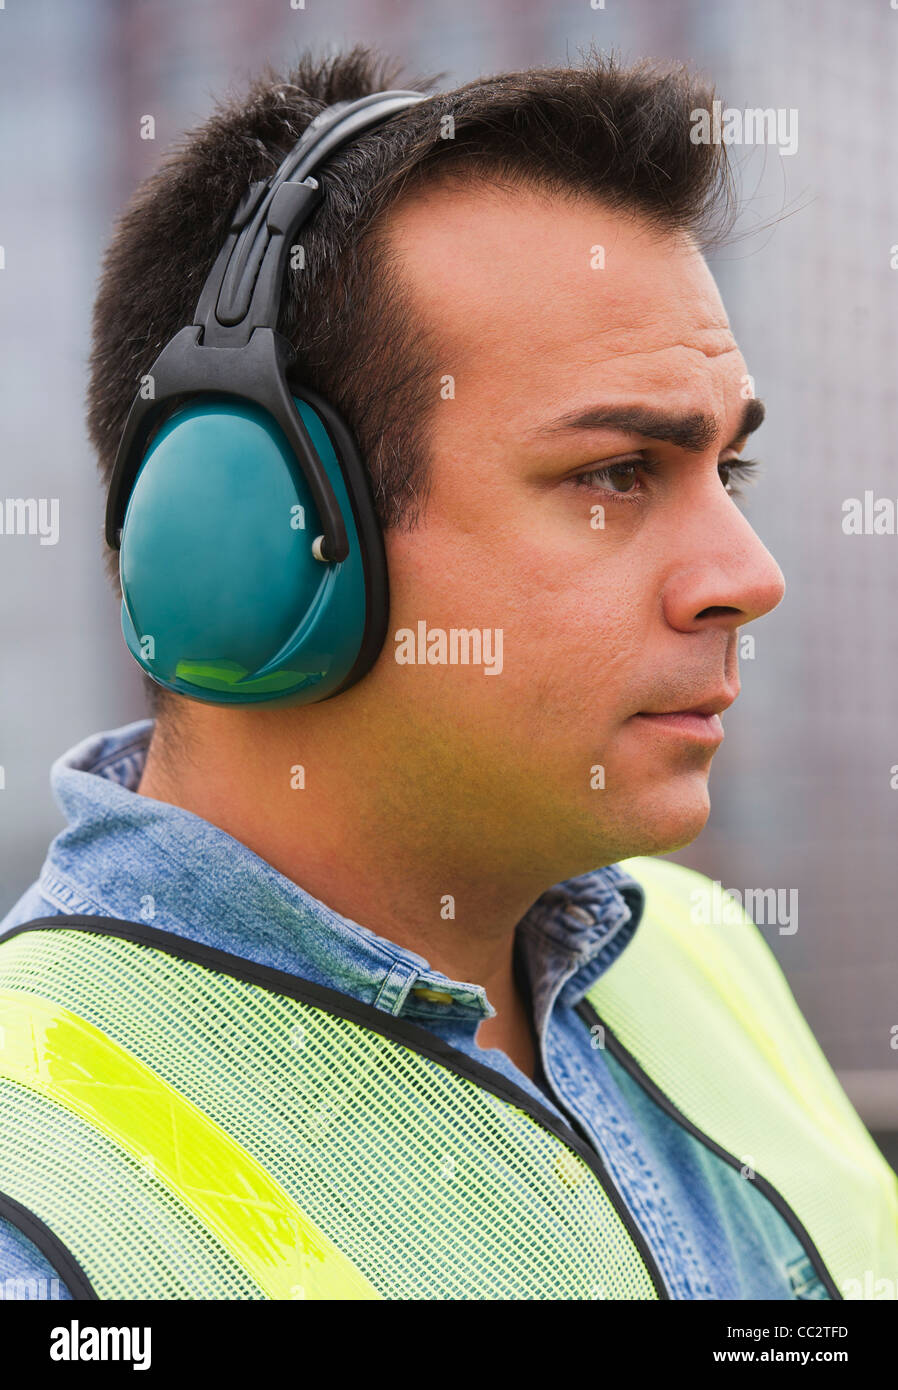 USA, New Jersey, Jersey City, Construction worker wearing reflective clothing and headphones - Stock Image